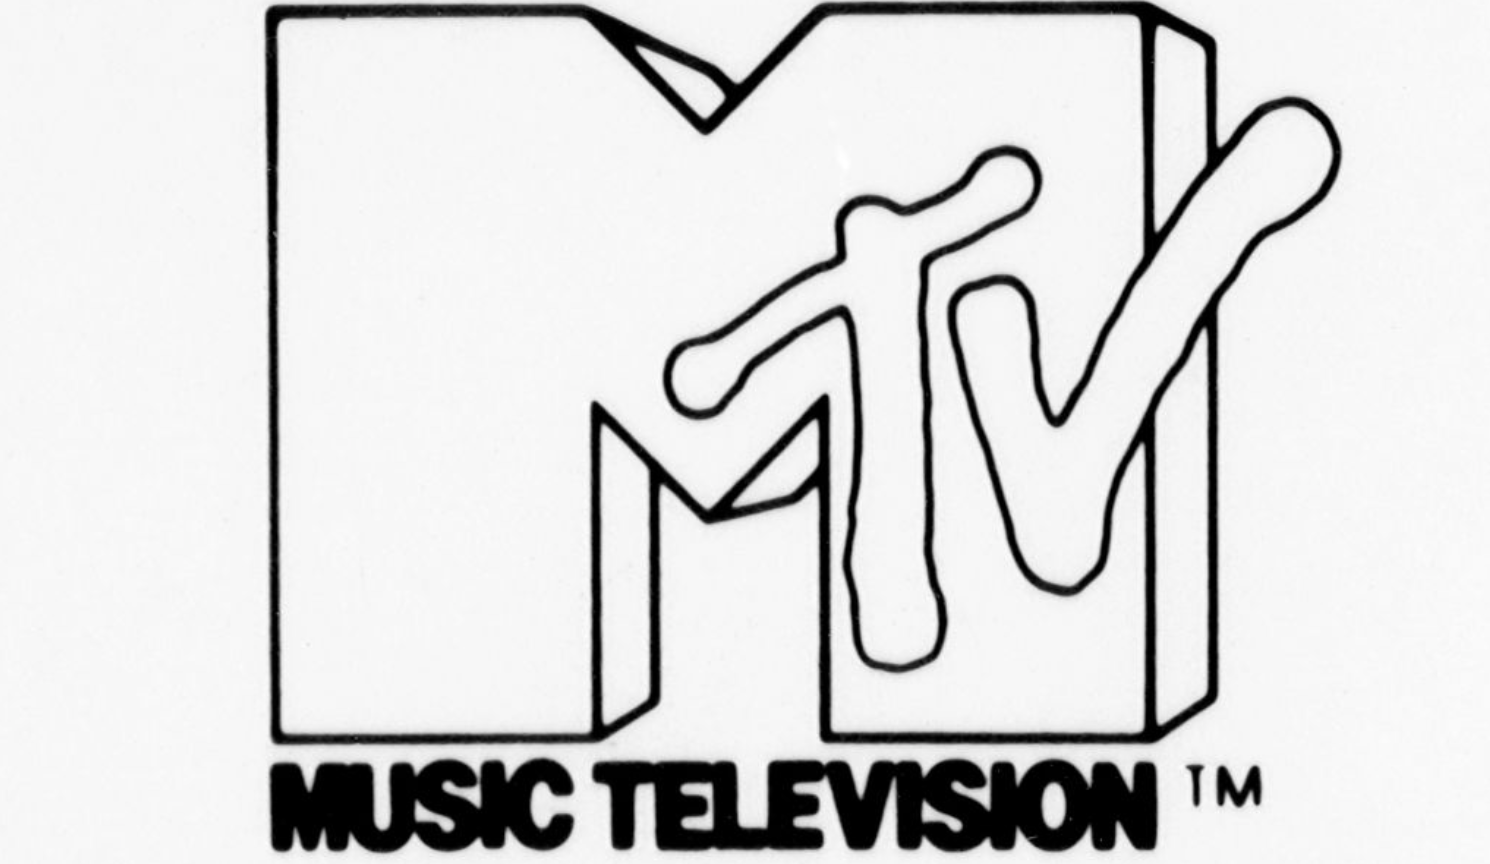 You can now watch hours of 80's & 90's MTV programming online